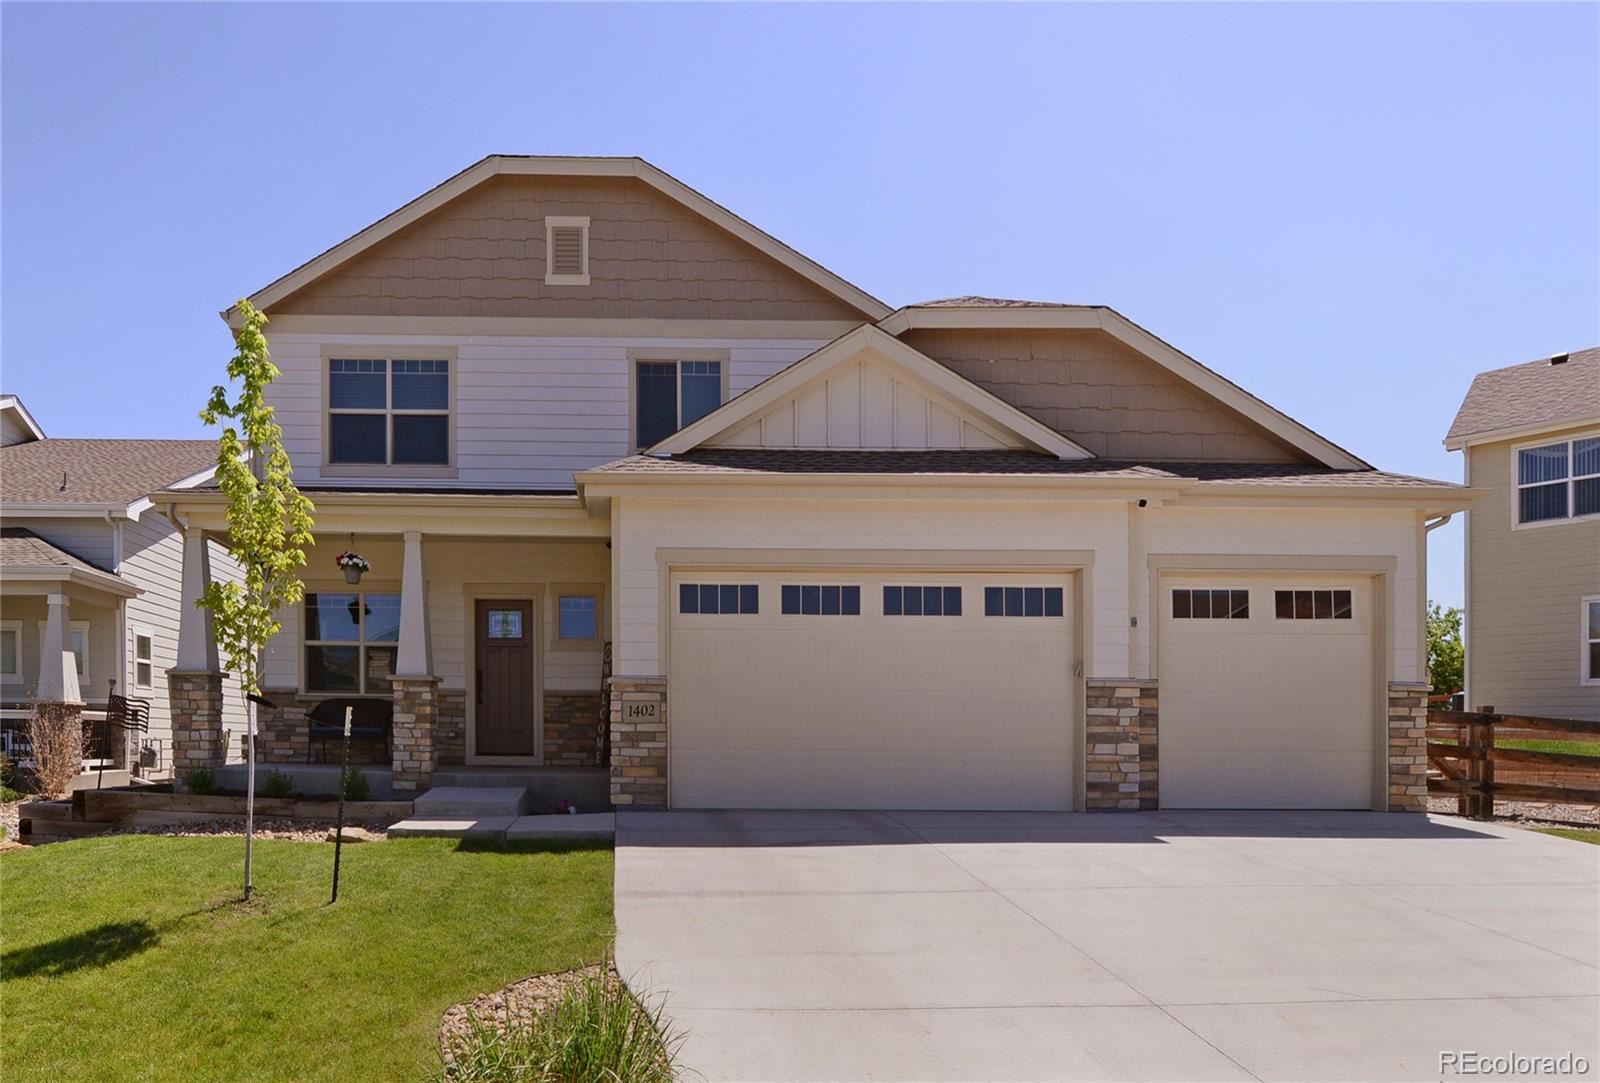 1402 63rd Avenue Court, Greeley, CO 80634 - #: 9035992